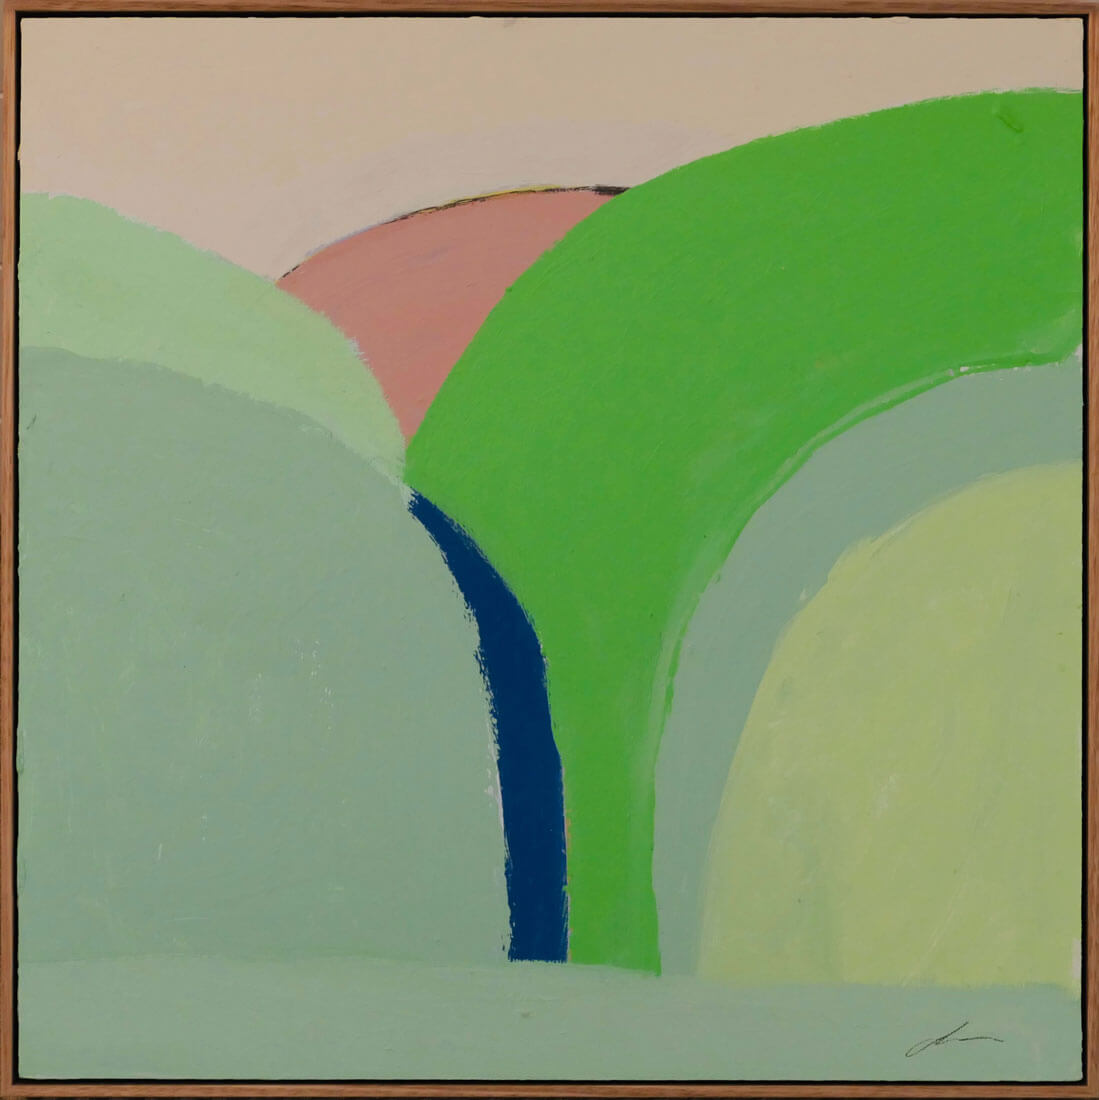 Daimon Downey: Up in Those Hills